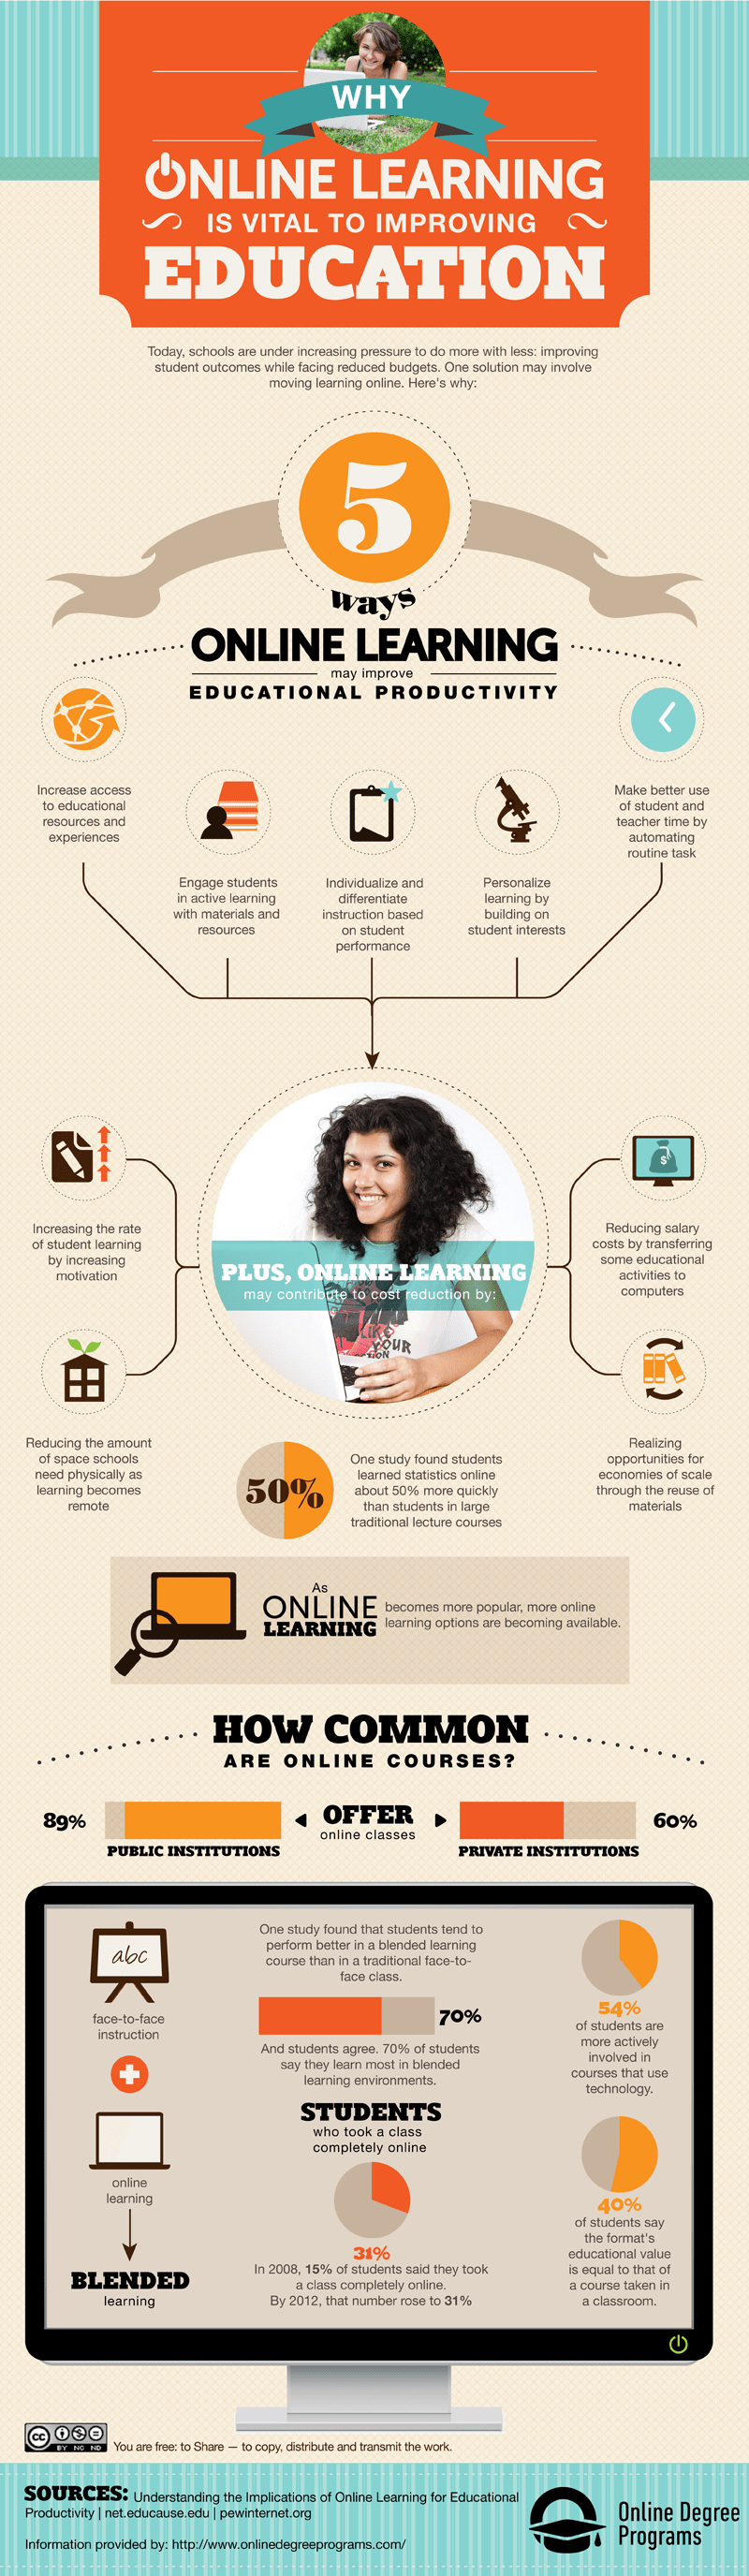 Why Online Learning Is Vital to Improving Education